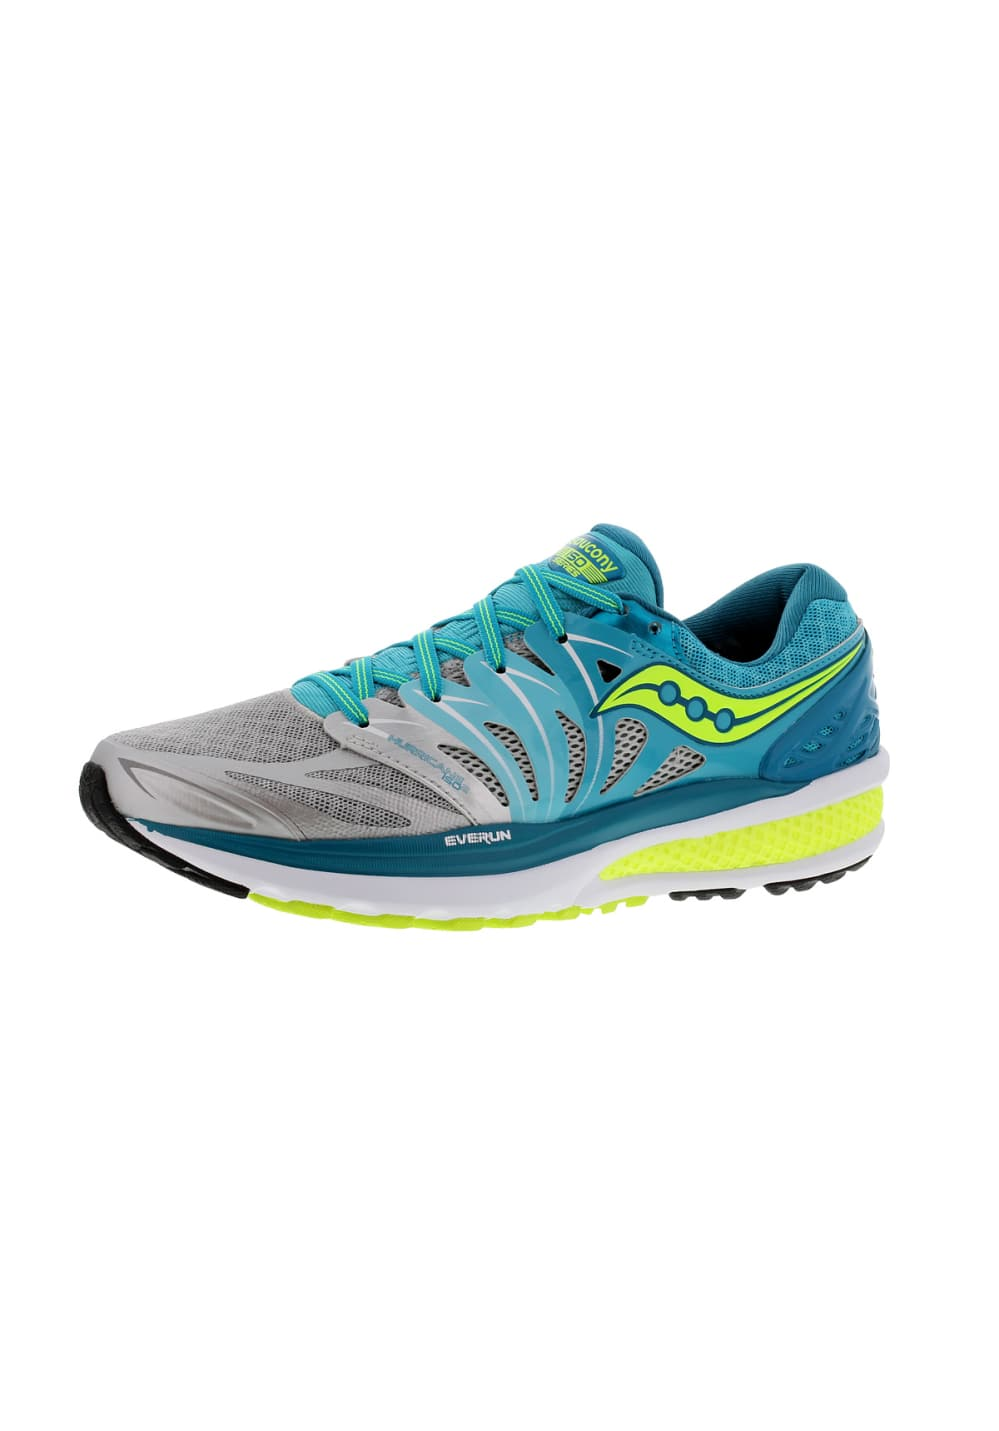 f1cebd46 Saucony Hurricane Iso 2 - Running shoes for Women - Blue | 21RUN